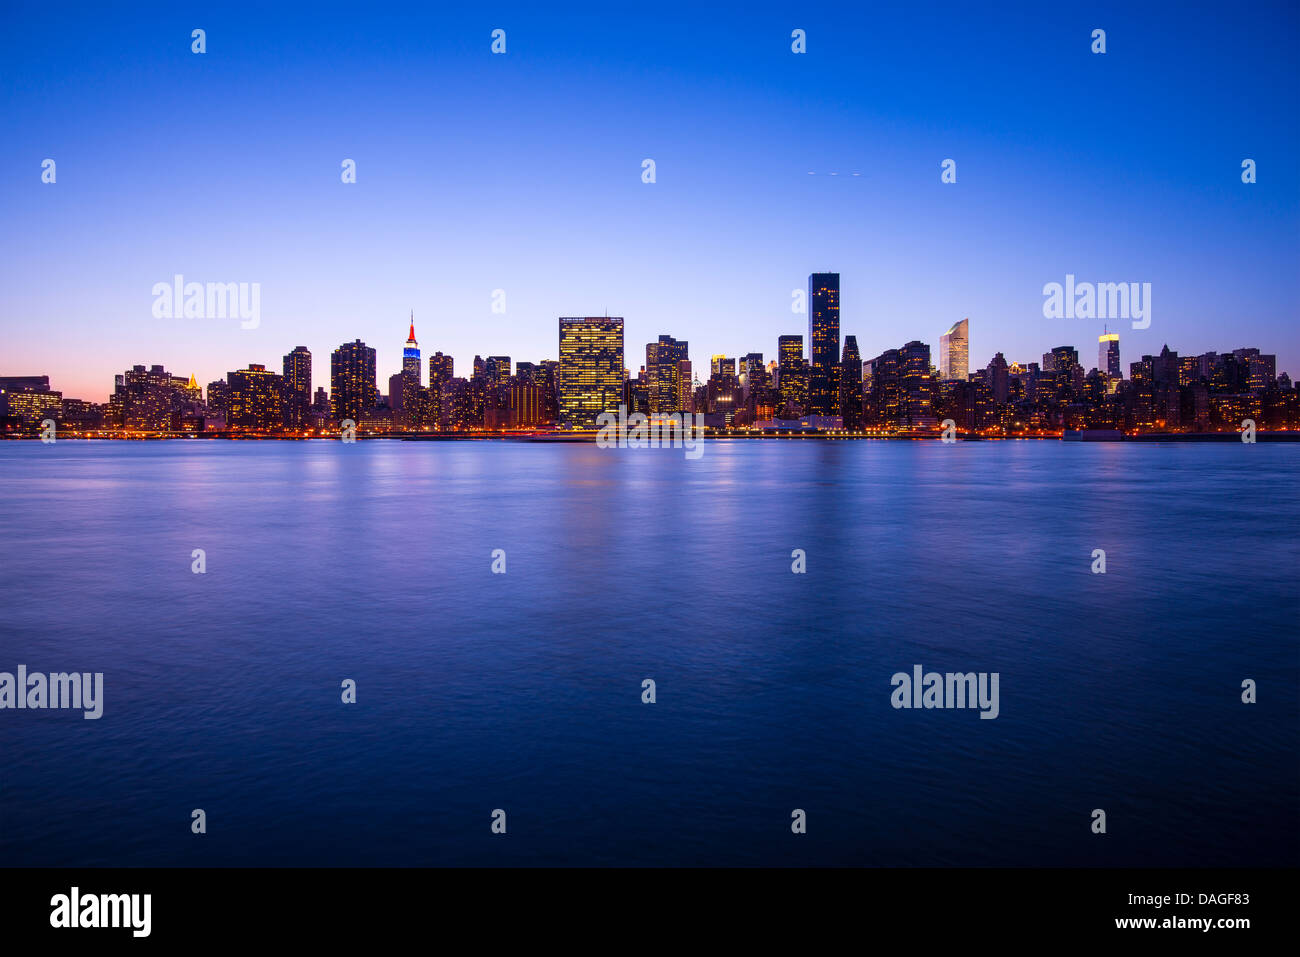 Midtown Manhattan skyline across the East River in New York City. Stock Photo